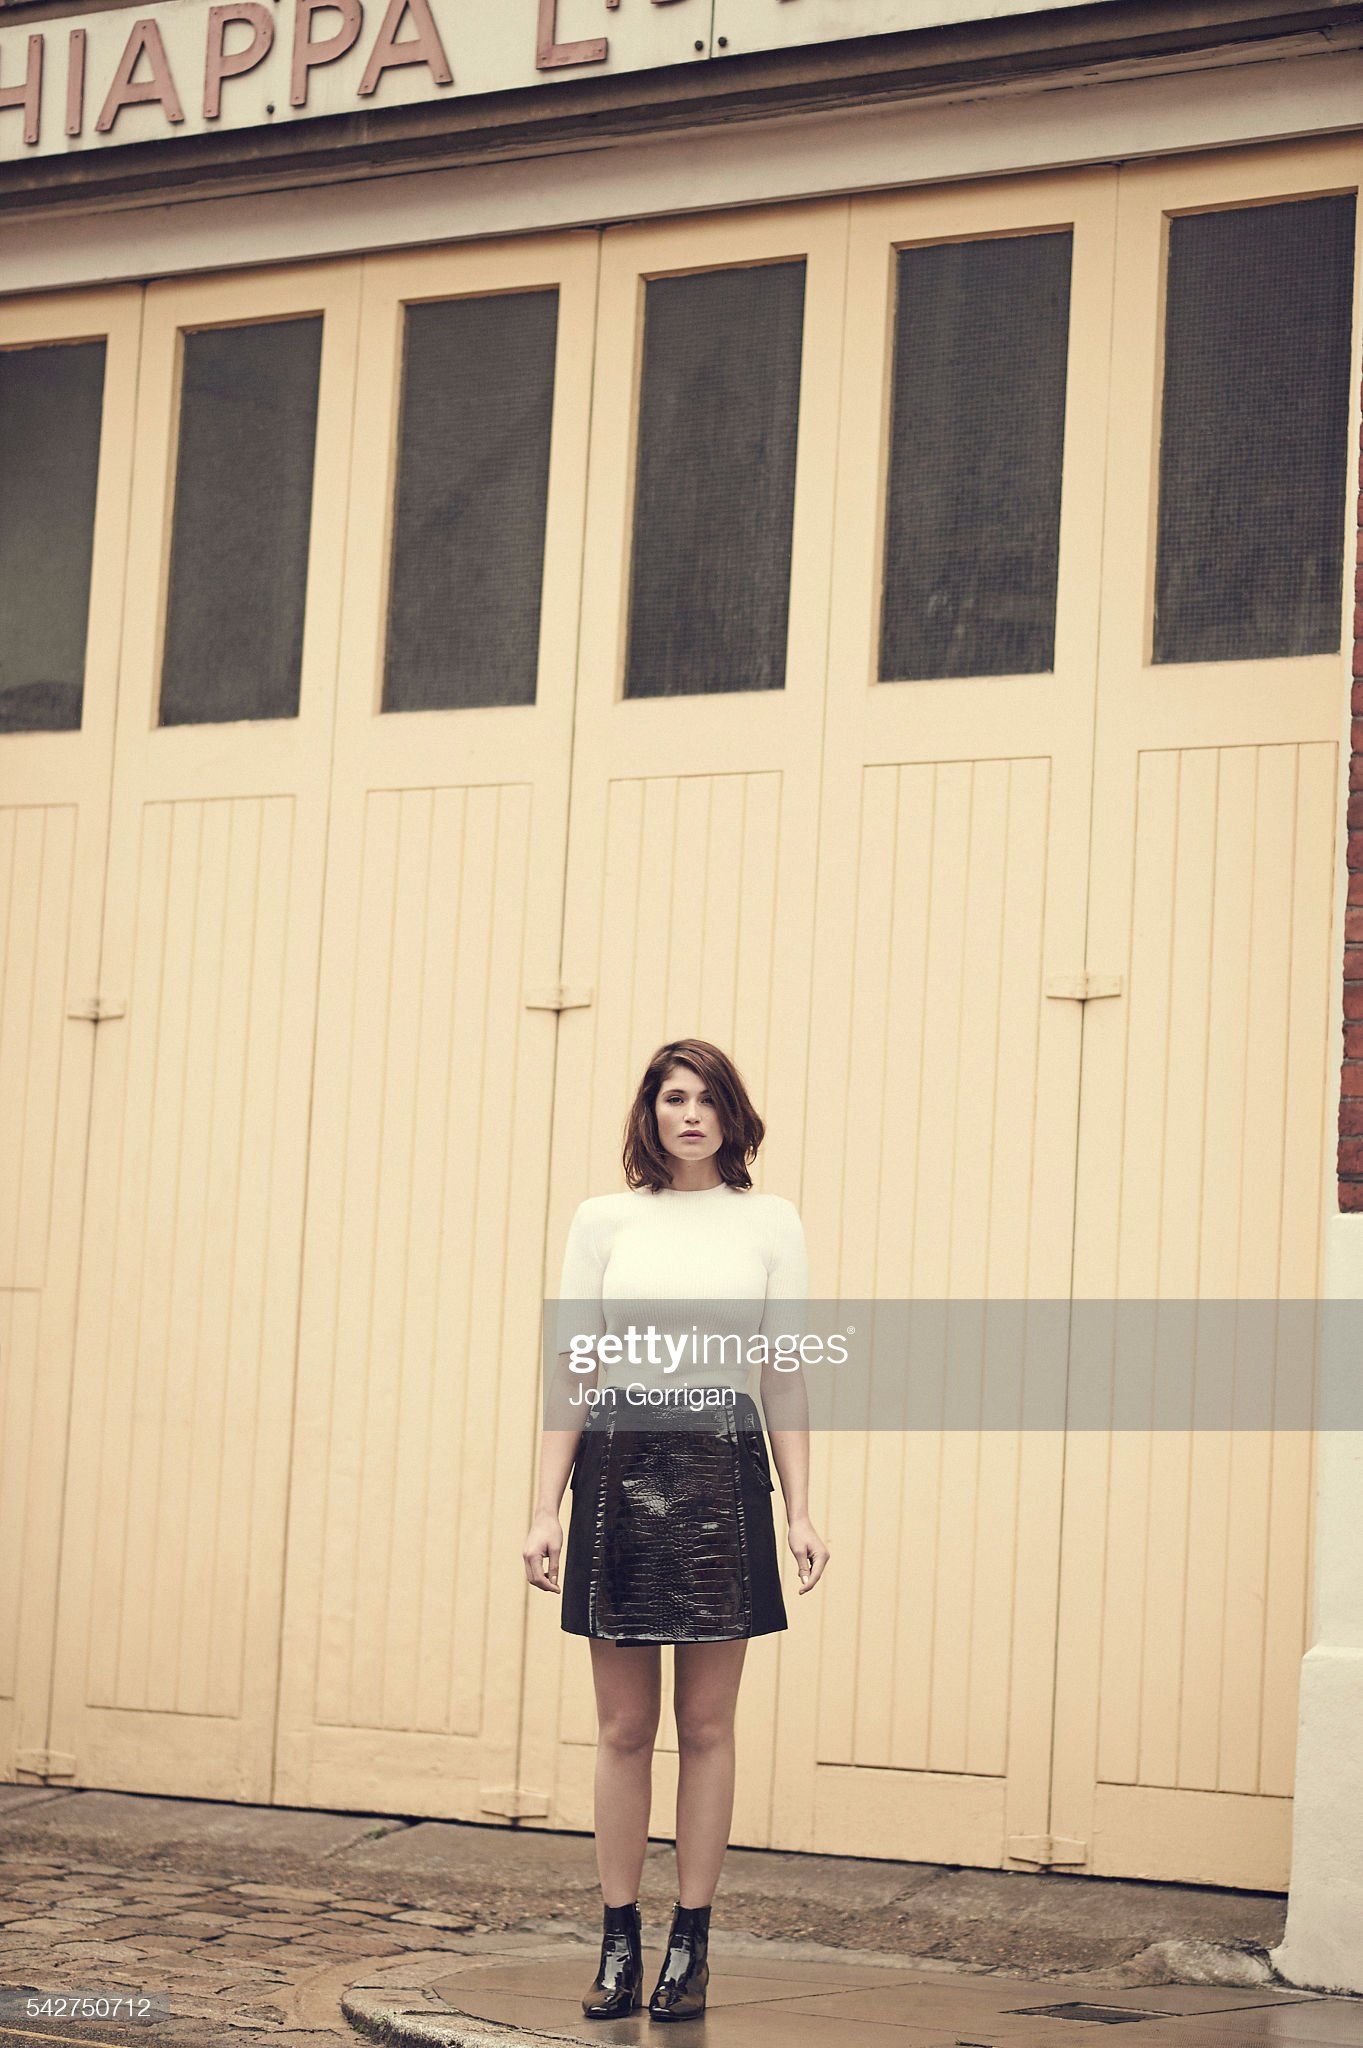 actor-gemma-arterton-is-photographed-for-es-magazine-on-september-29-picture-id542750712